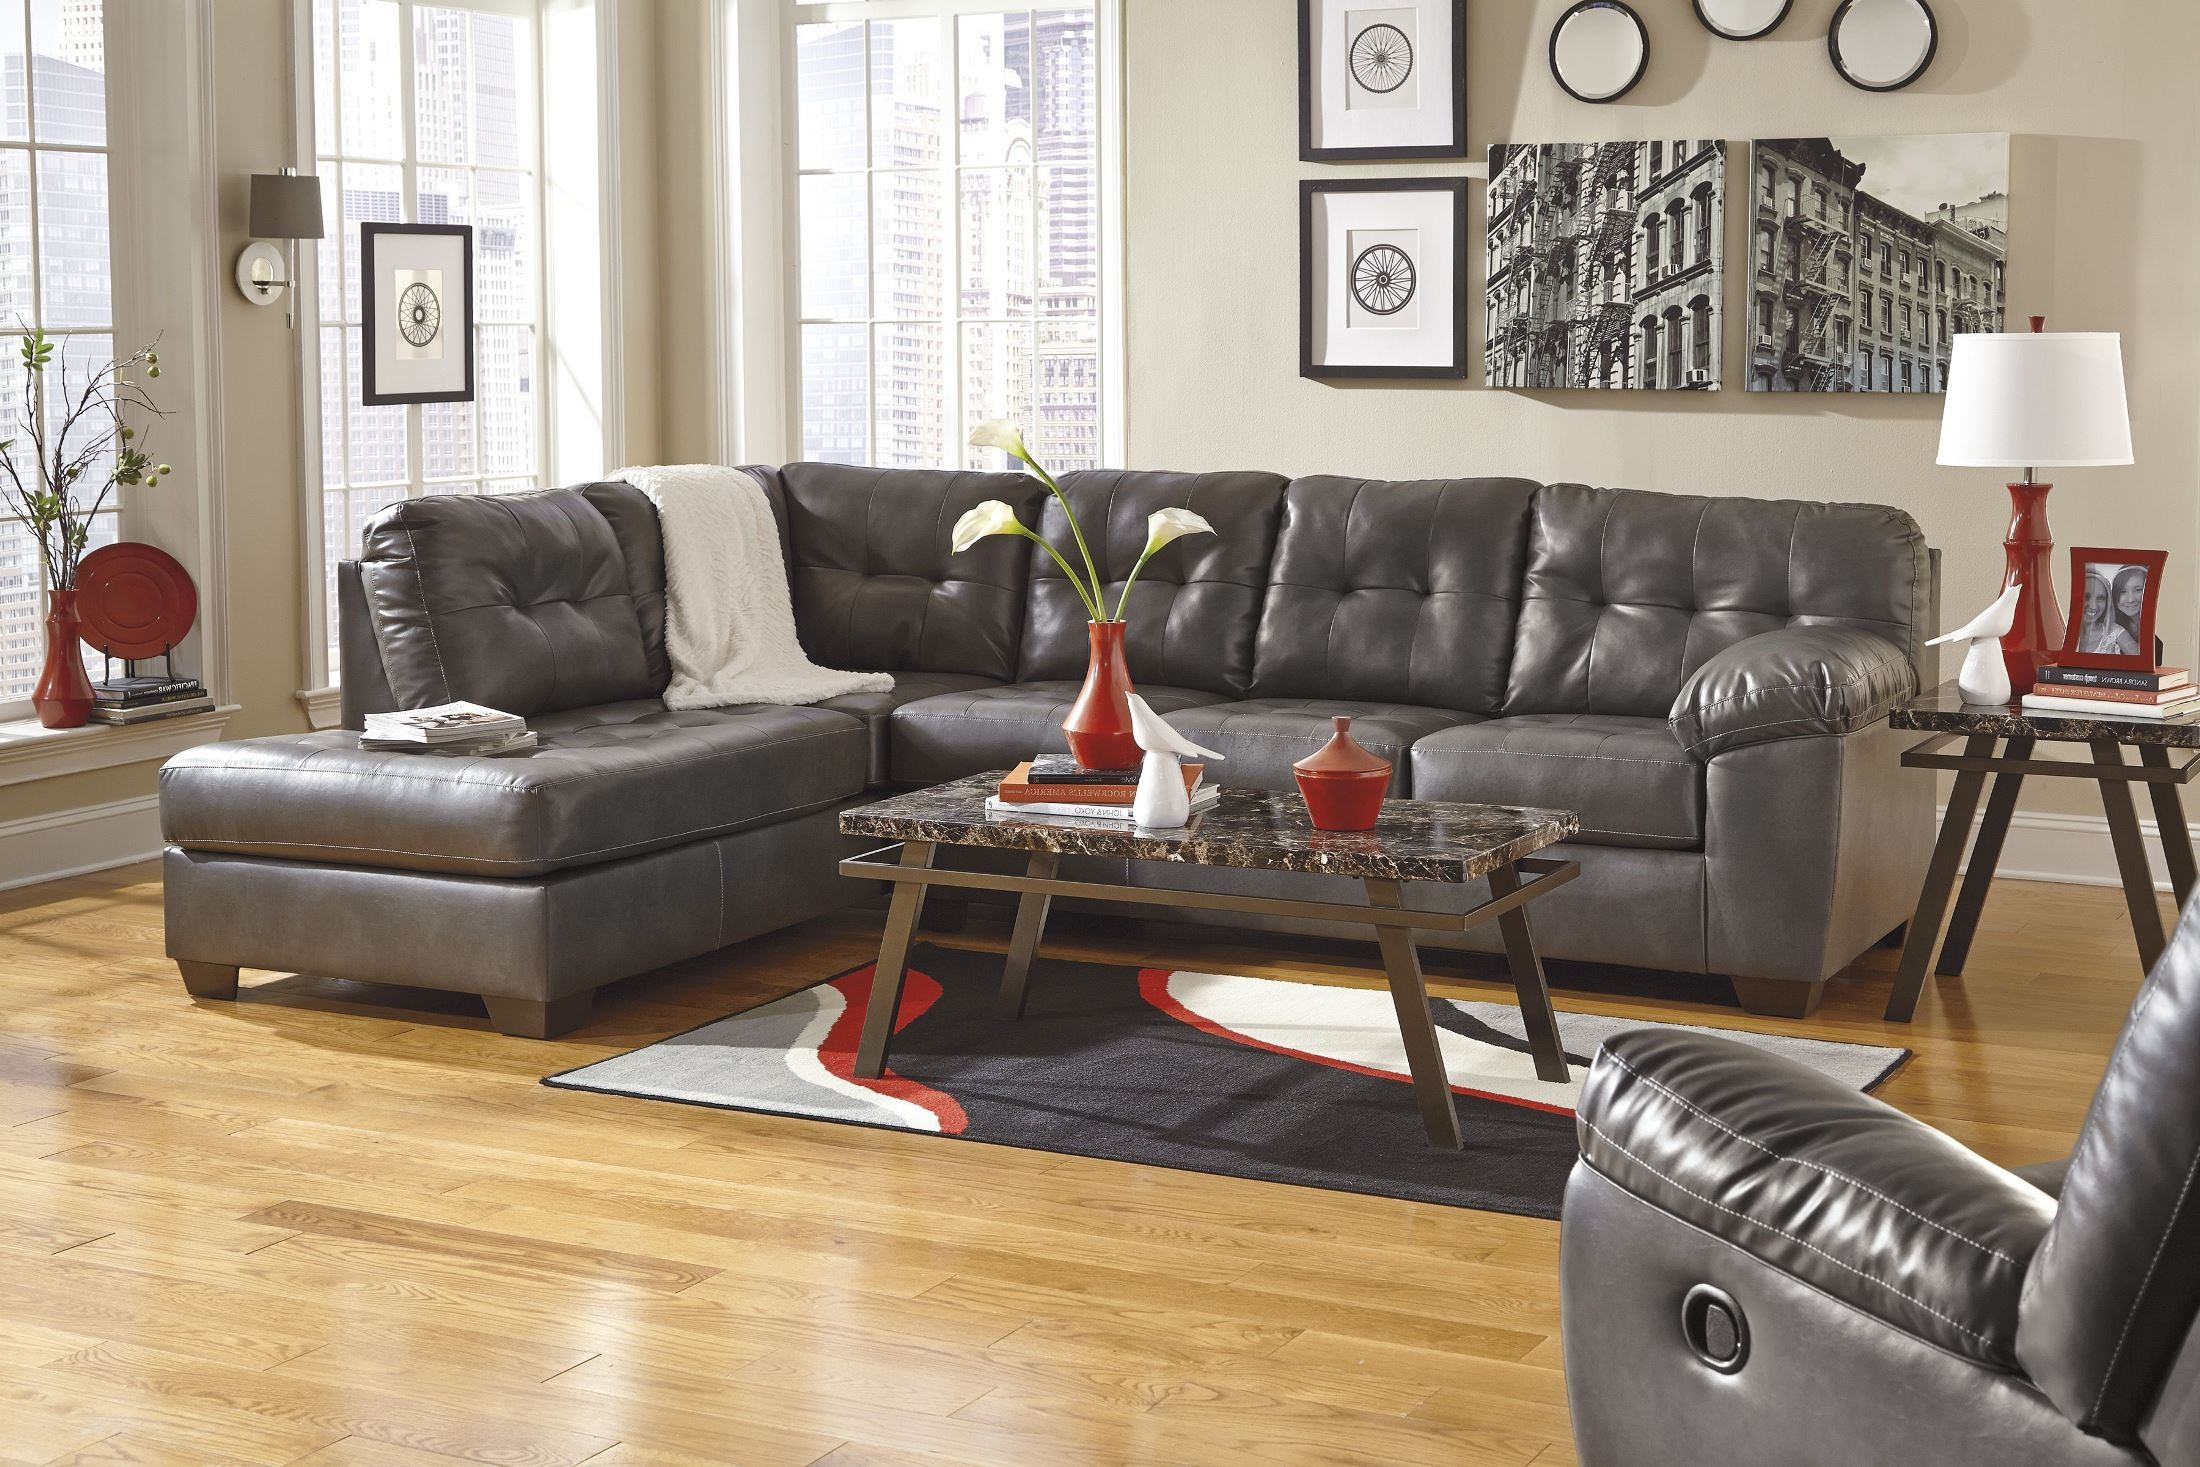 Alliston DuraBlend Gray LAF Sectional from Ashley 16 67